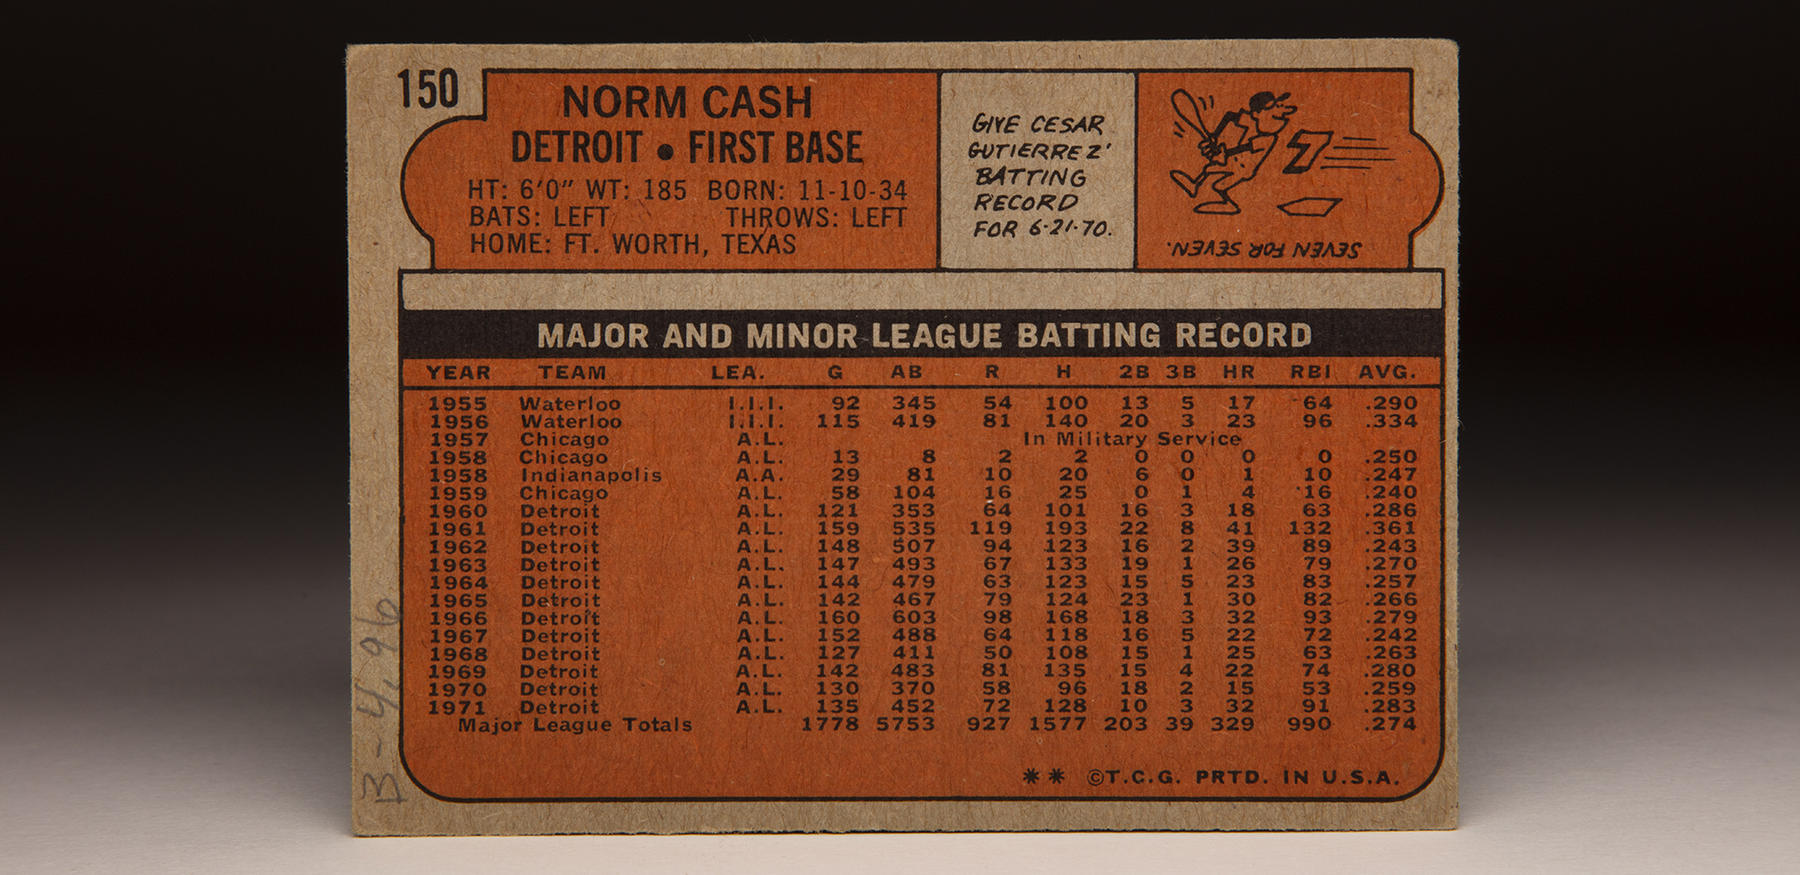 The reverse of Norm Cash's 1972 Topps card. (Topps baseball card photographed by Milo Stewart Jr./National Baseball Hall of Fame and Museum)